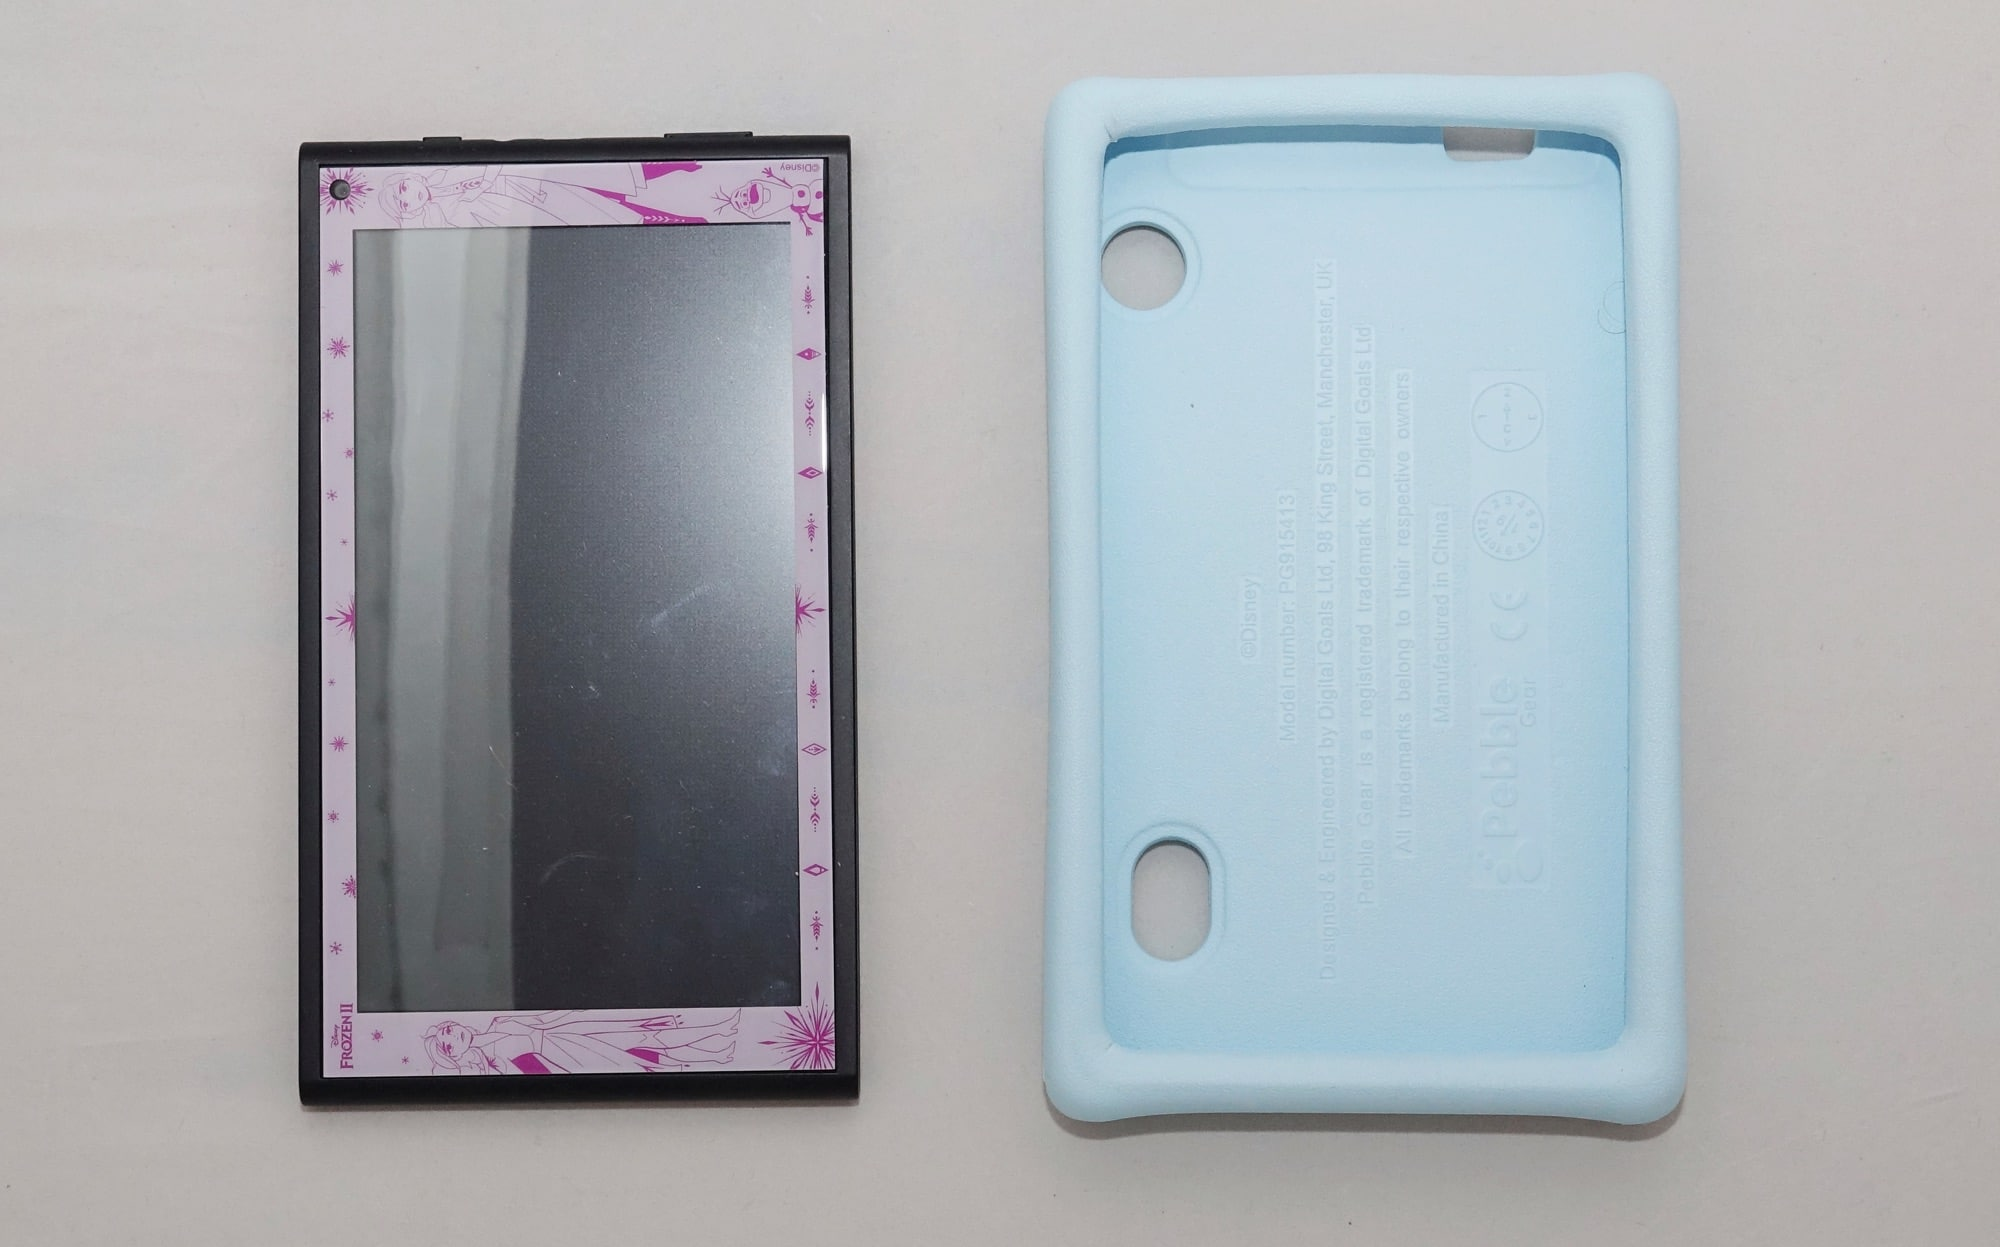 Pebble Gear Disney tablet for kids with the bumper case and a screen protector